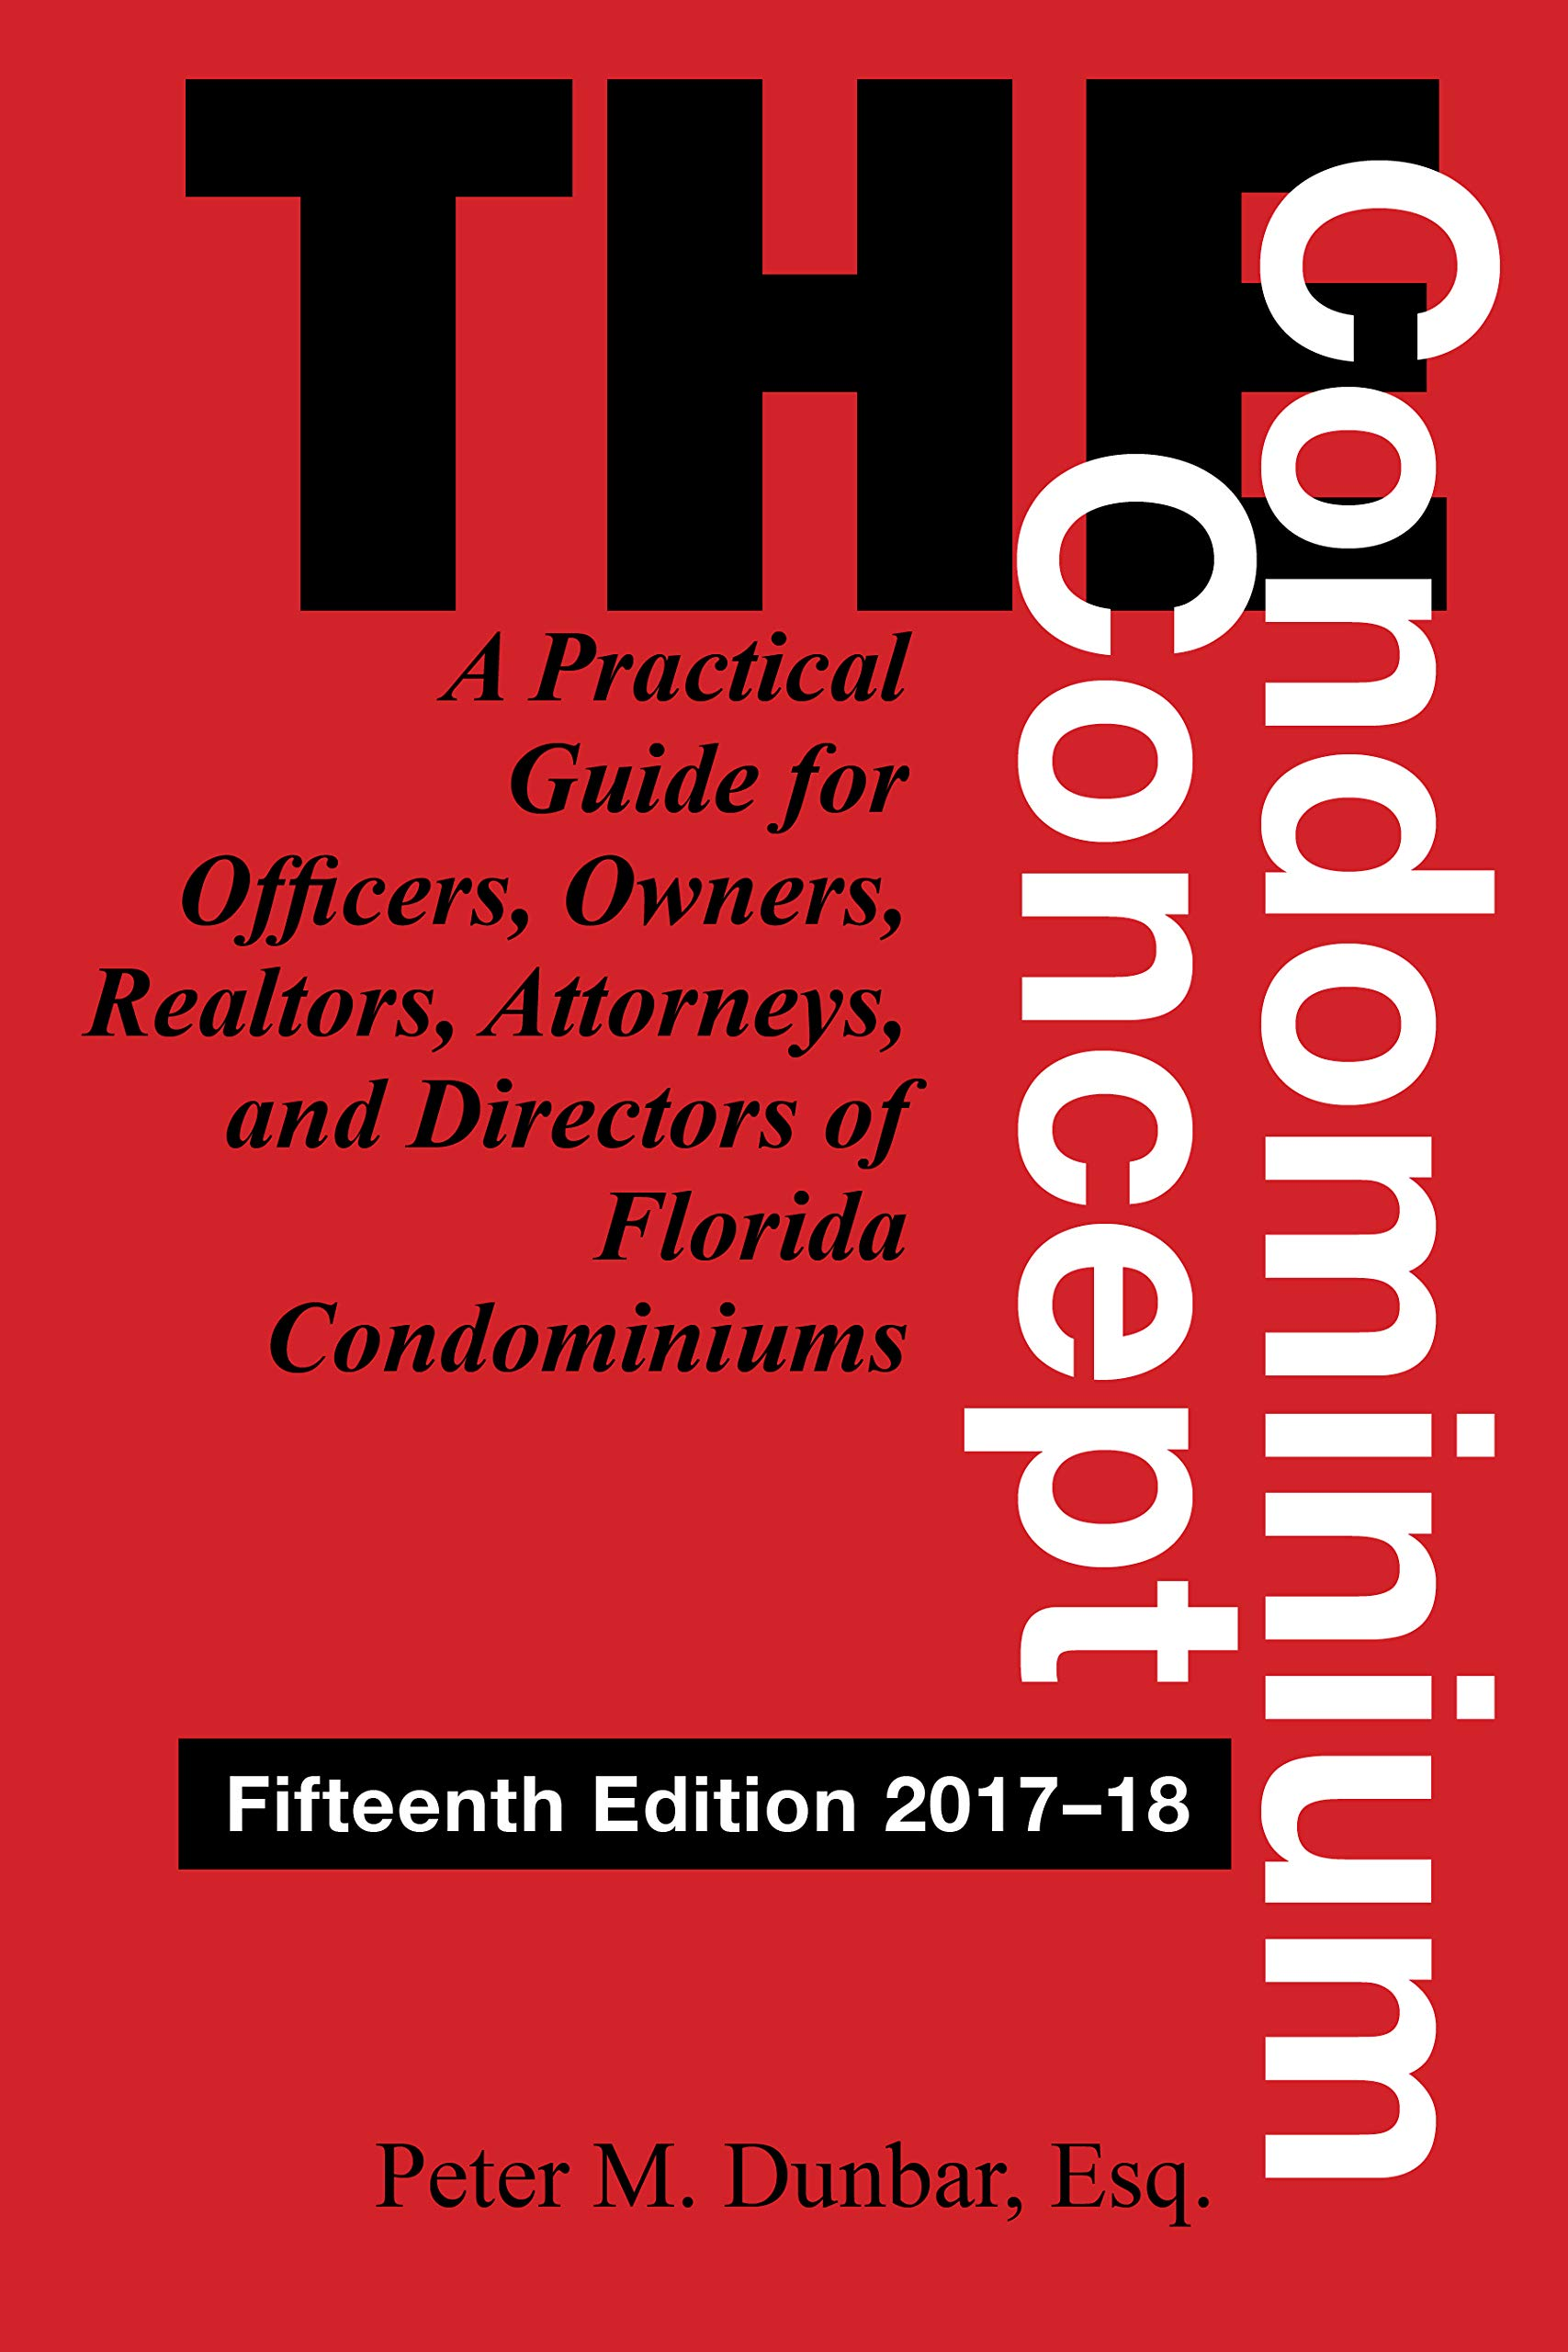 The Condominium Concept: A Practical Guide for Officers, Owners, Realtors, Attorneys, and Directors of Florida Condominiums (Condominium Concepts) by Pineapple Press